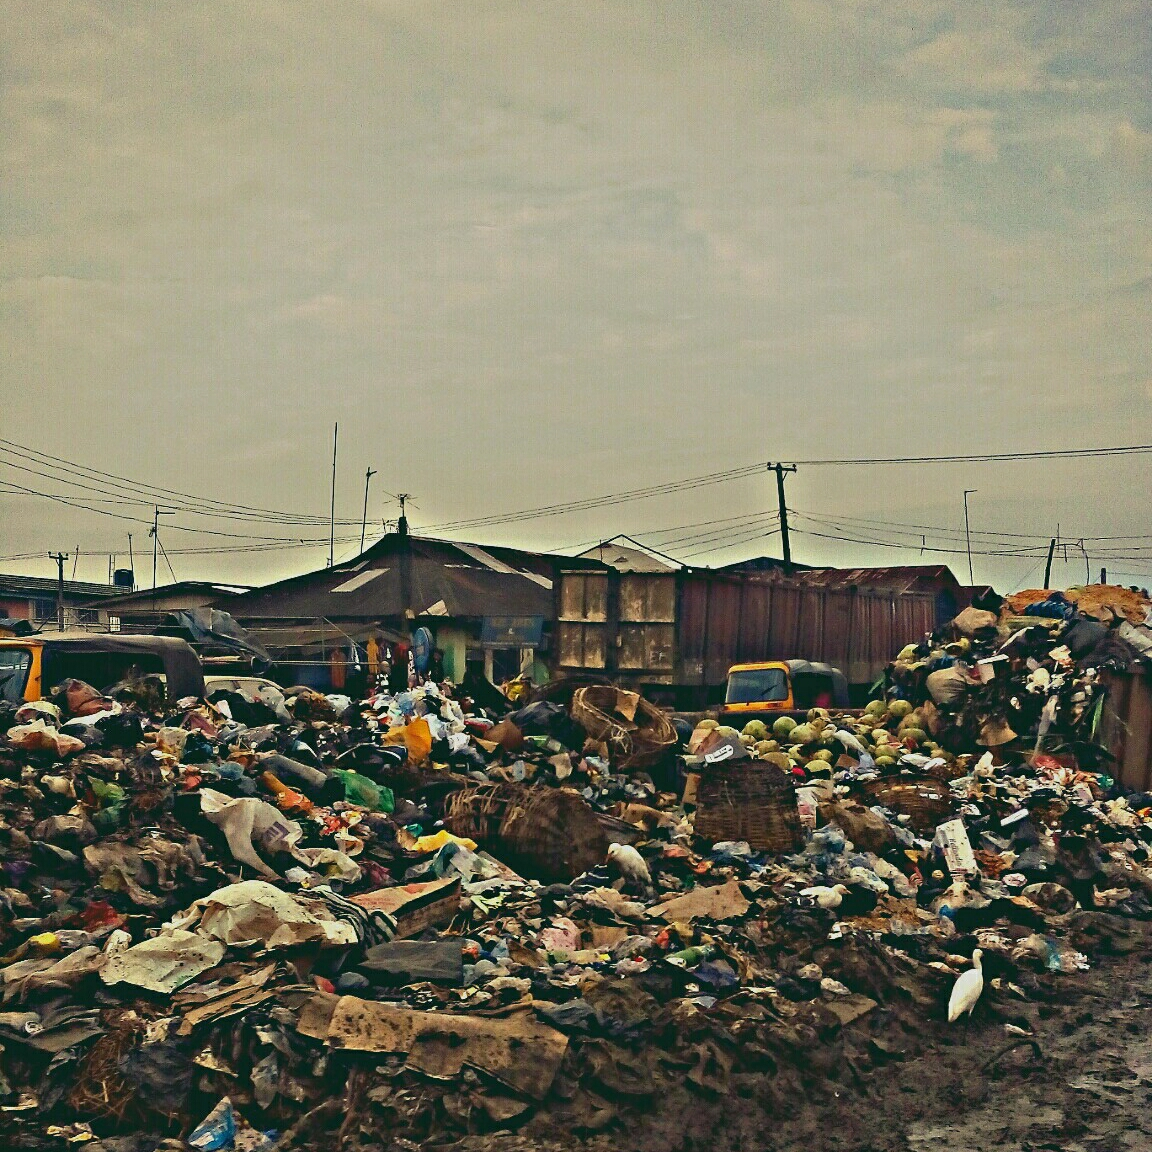 Somewhere in Aba